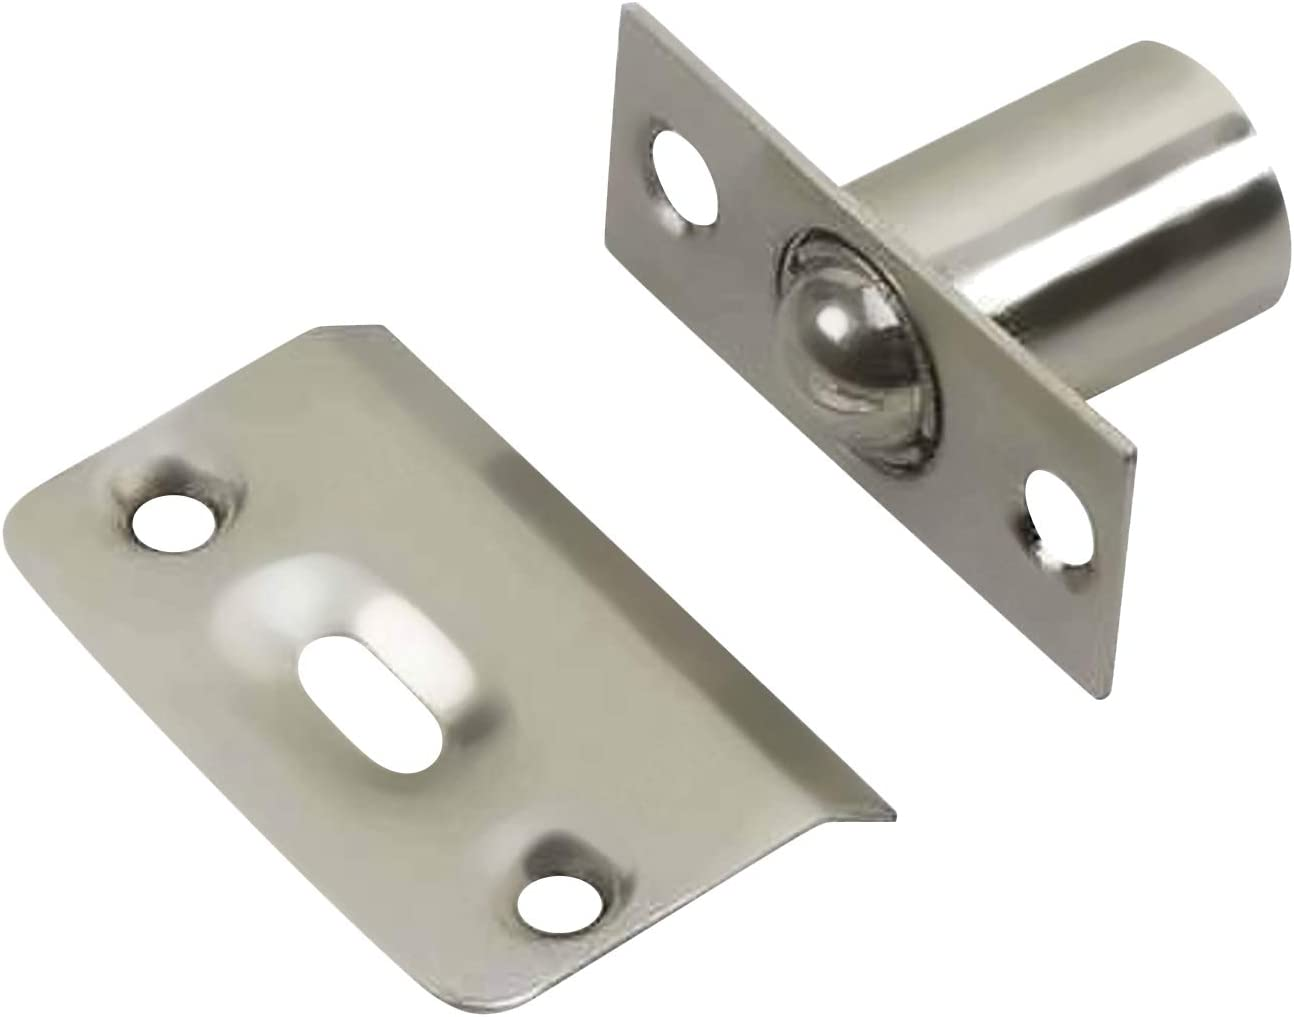 2 Pack Rok Hardware Brushed Large Limited time Wholesale for free shipping Adjustable Cabin Nickel Closet